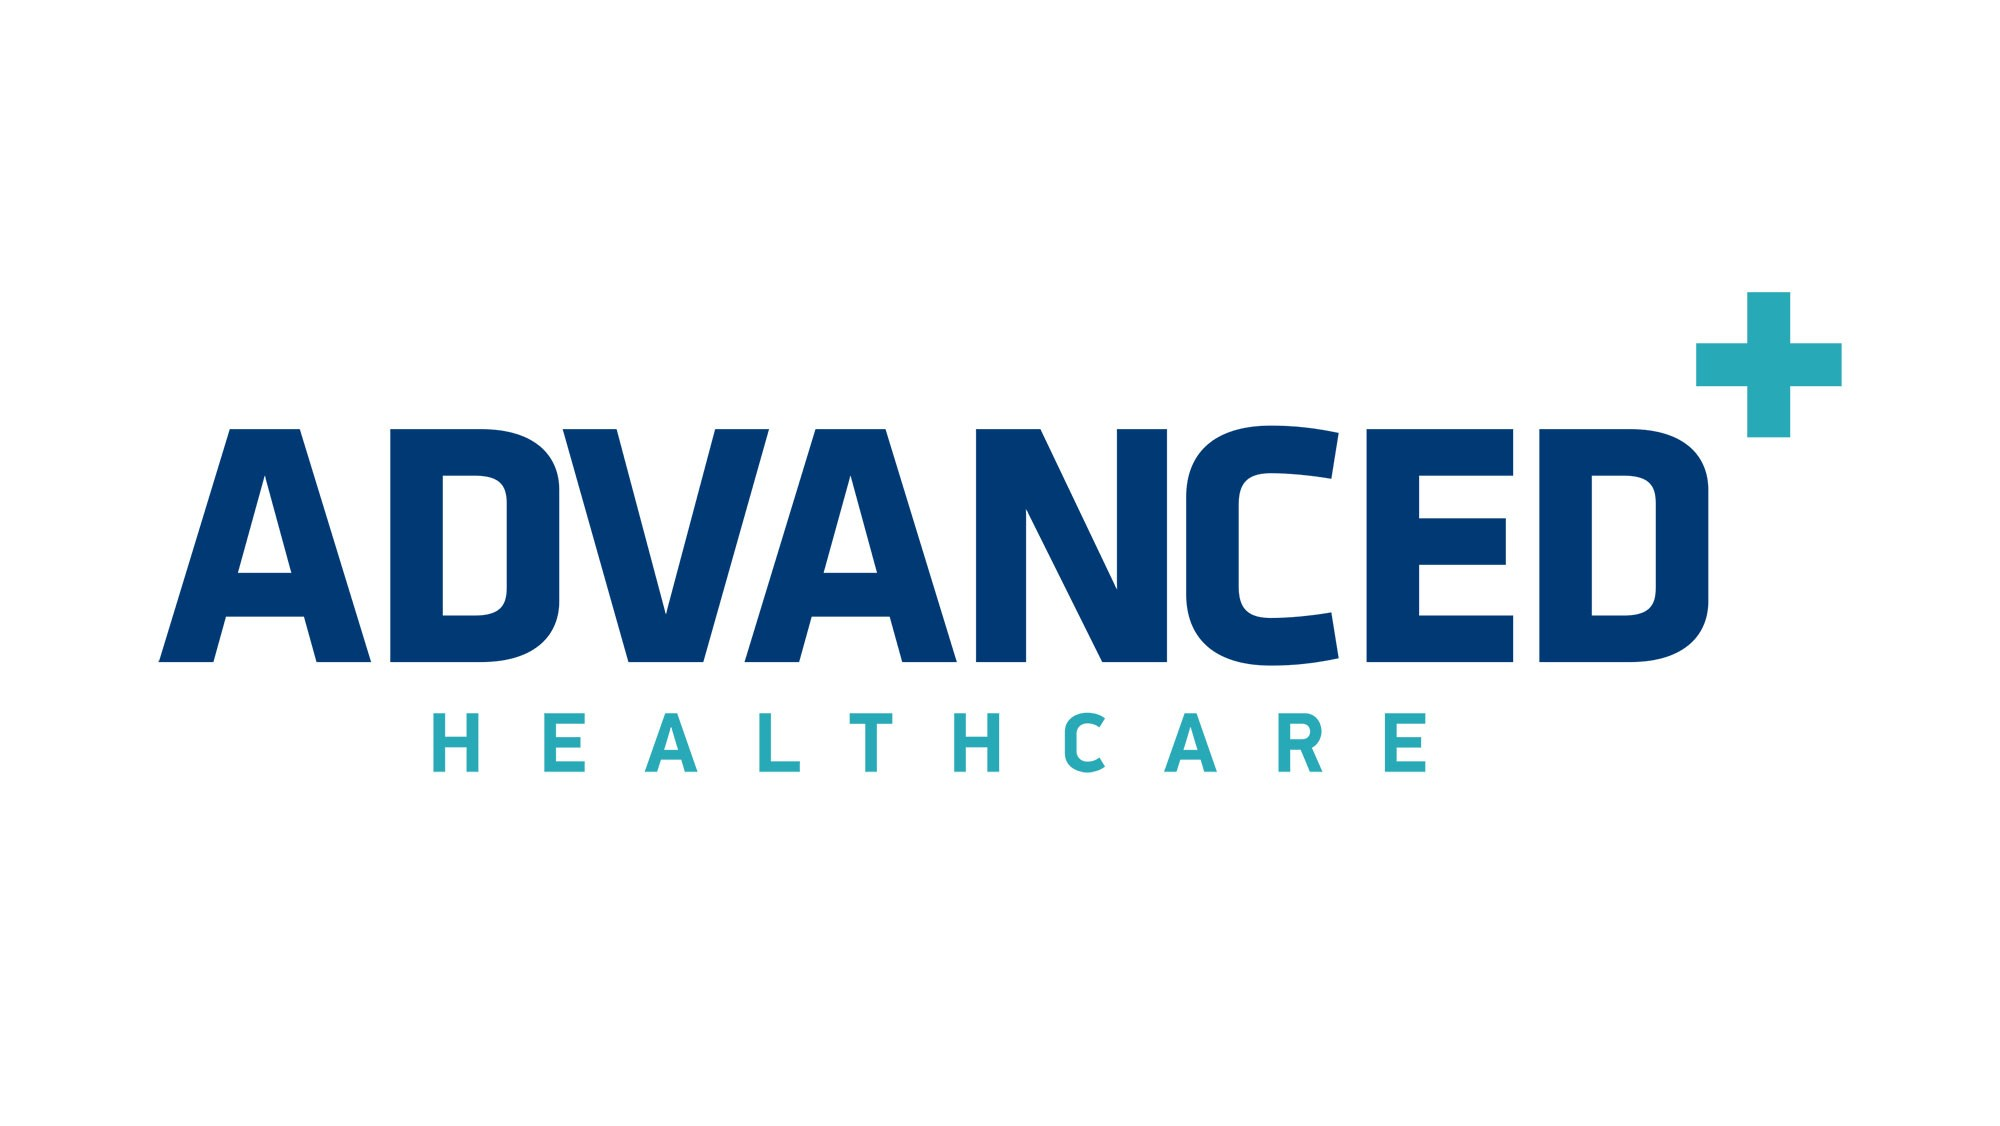 ahealthcare